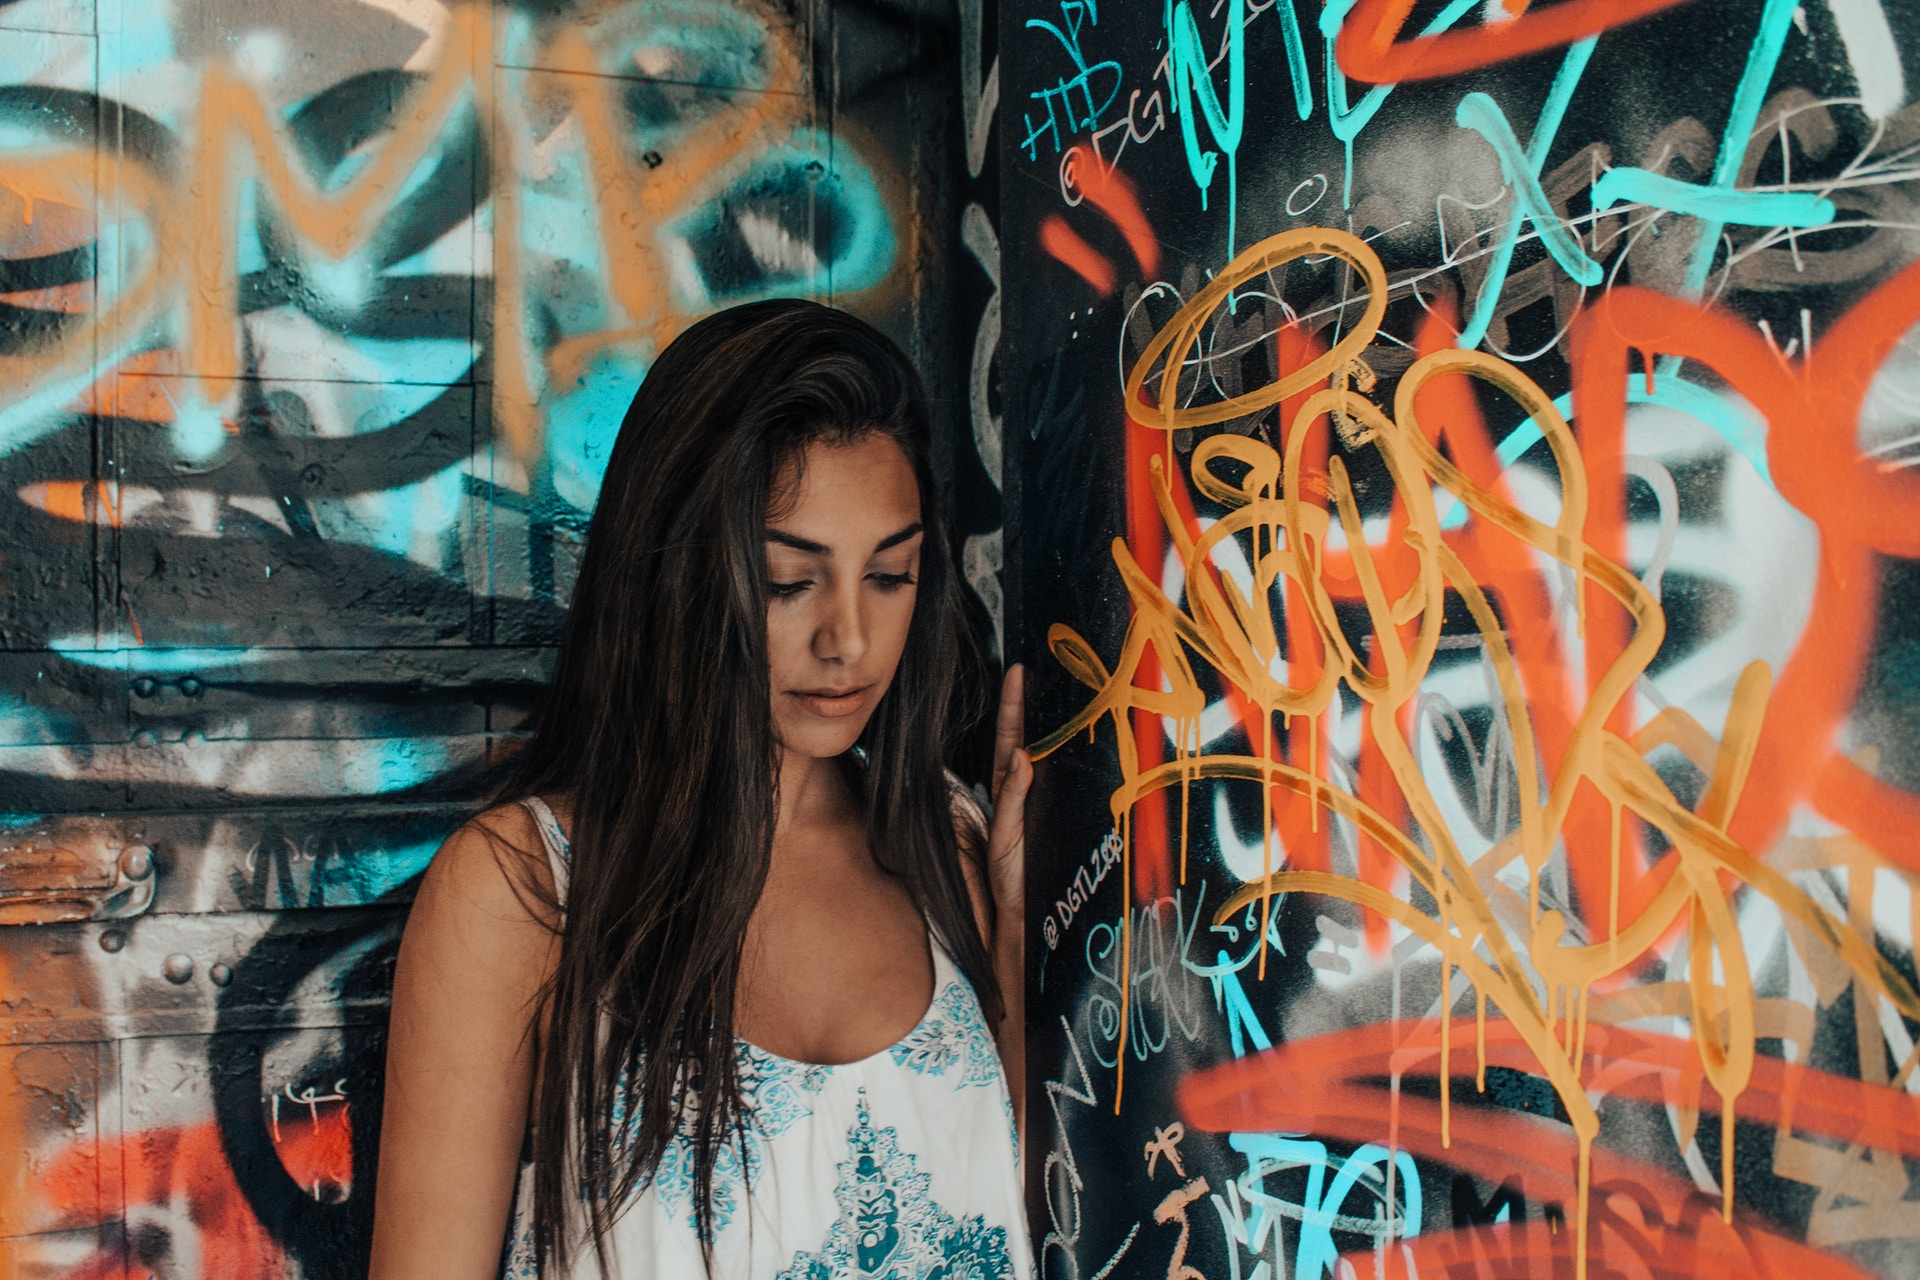 woman in white and blue tank top standing beside graffiti wall